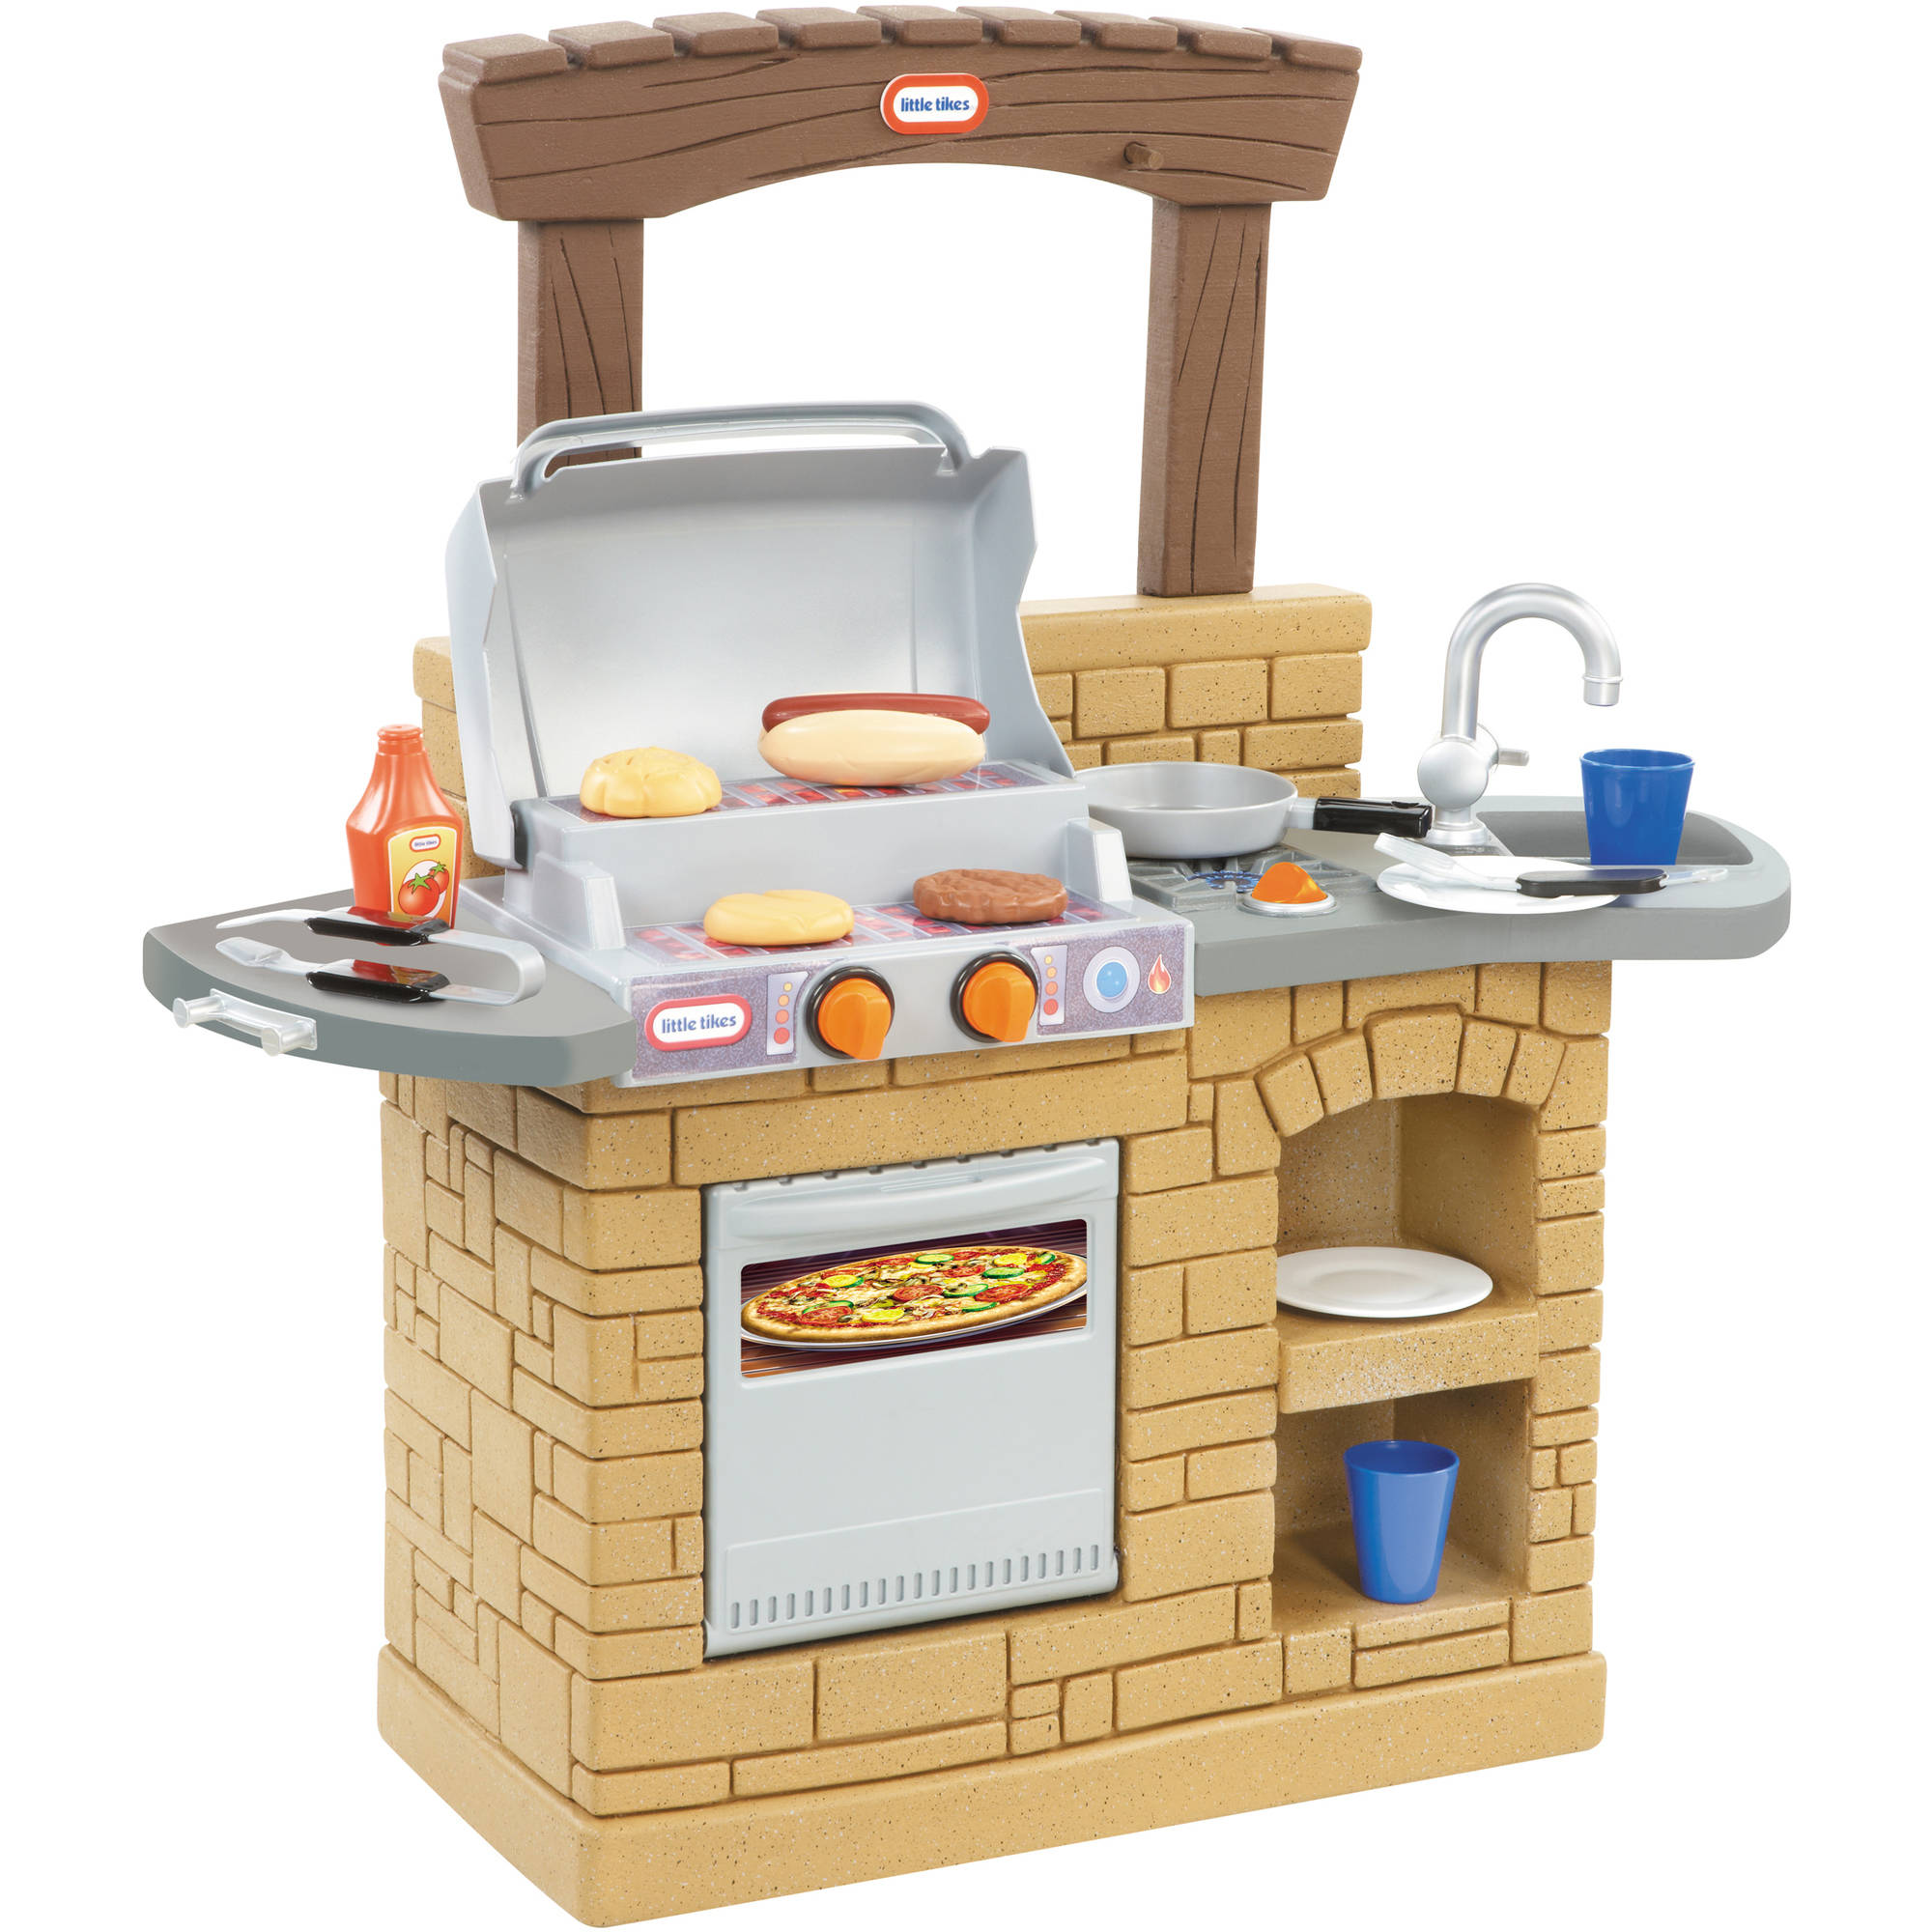 Little Tikes Cook \'n Play Outdoor BBQ Grill - Walmart.com